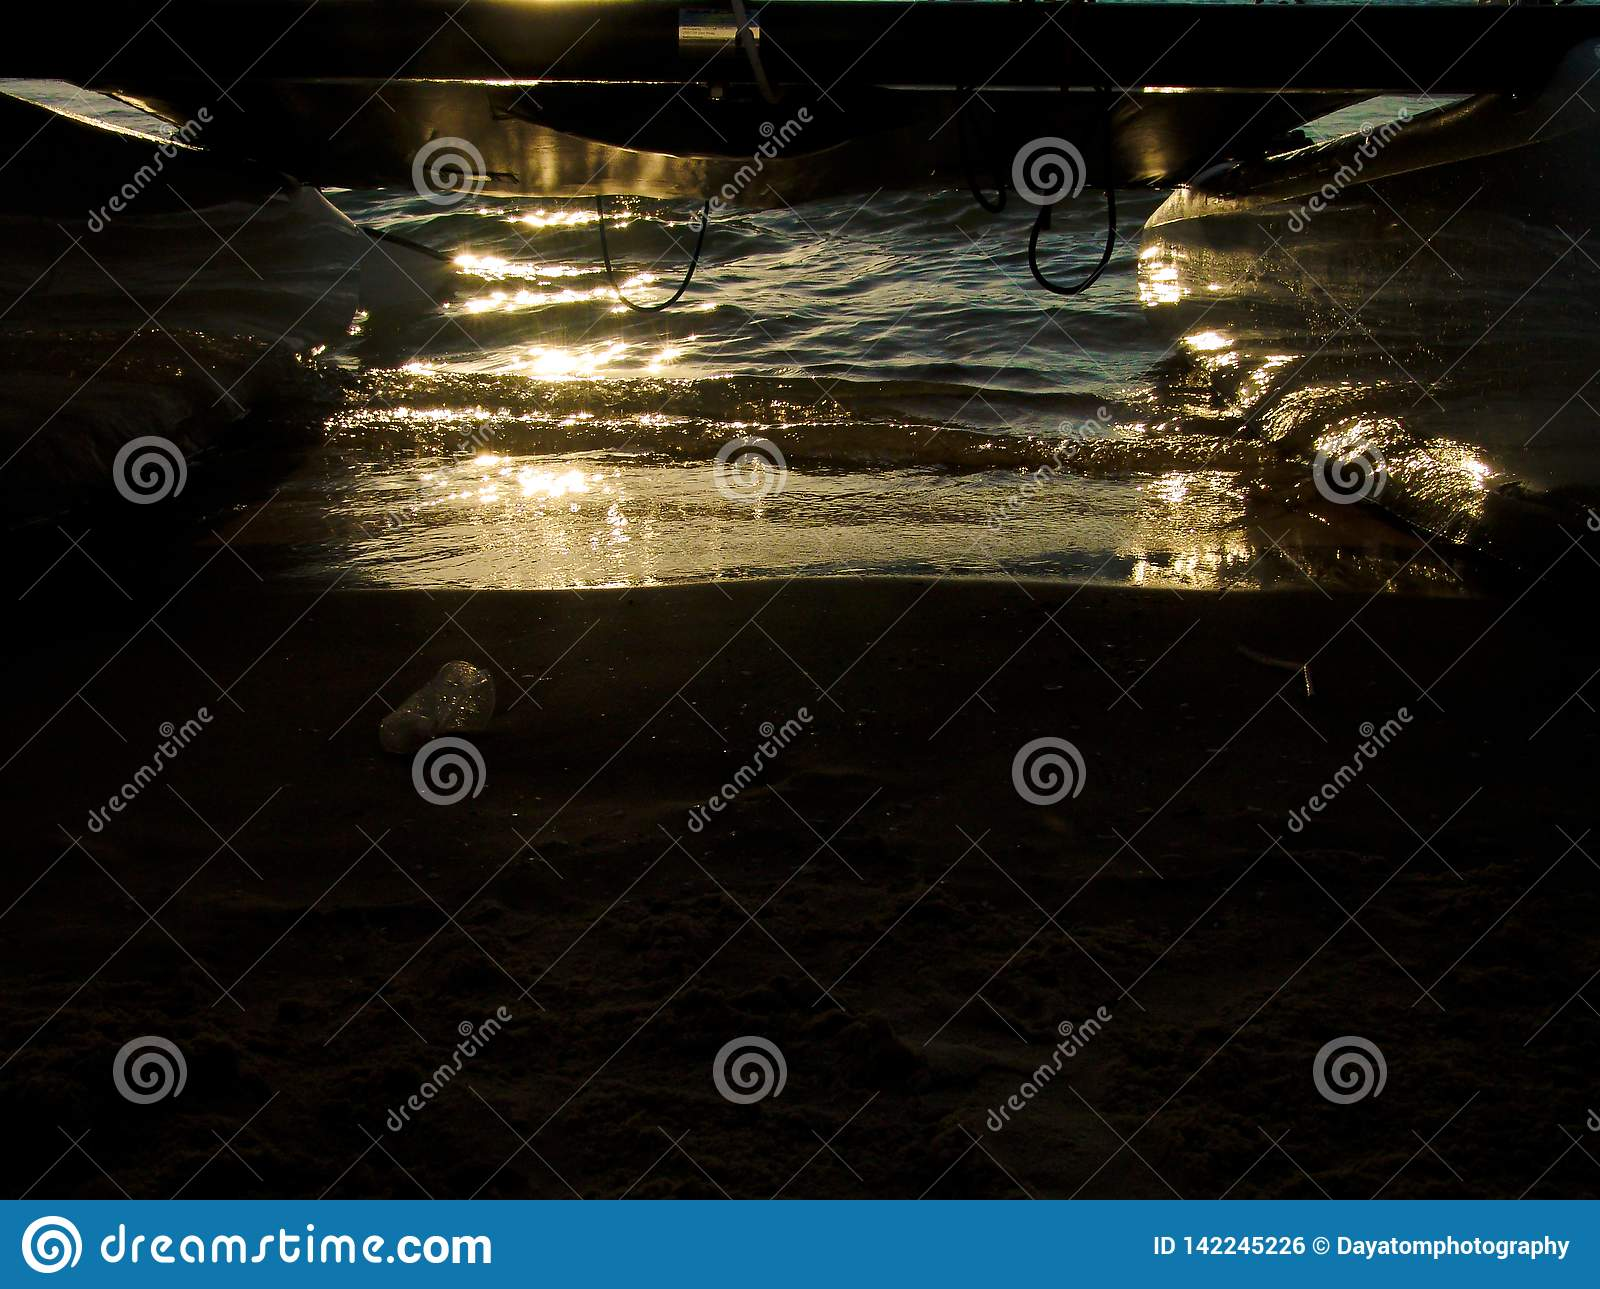 Sunset reflection on wet sand over a sandy beach in the ocean, under a wind surf board boat